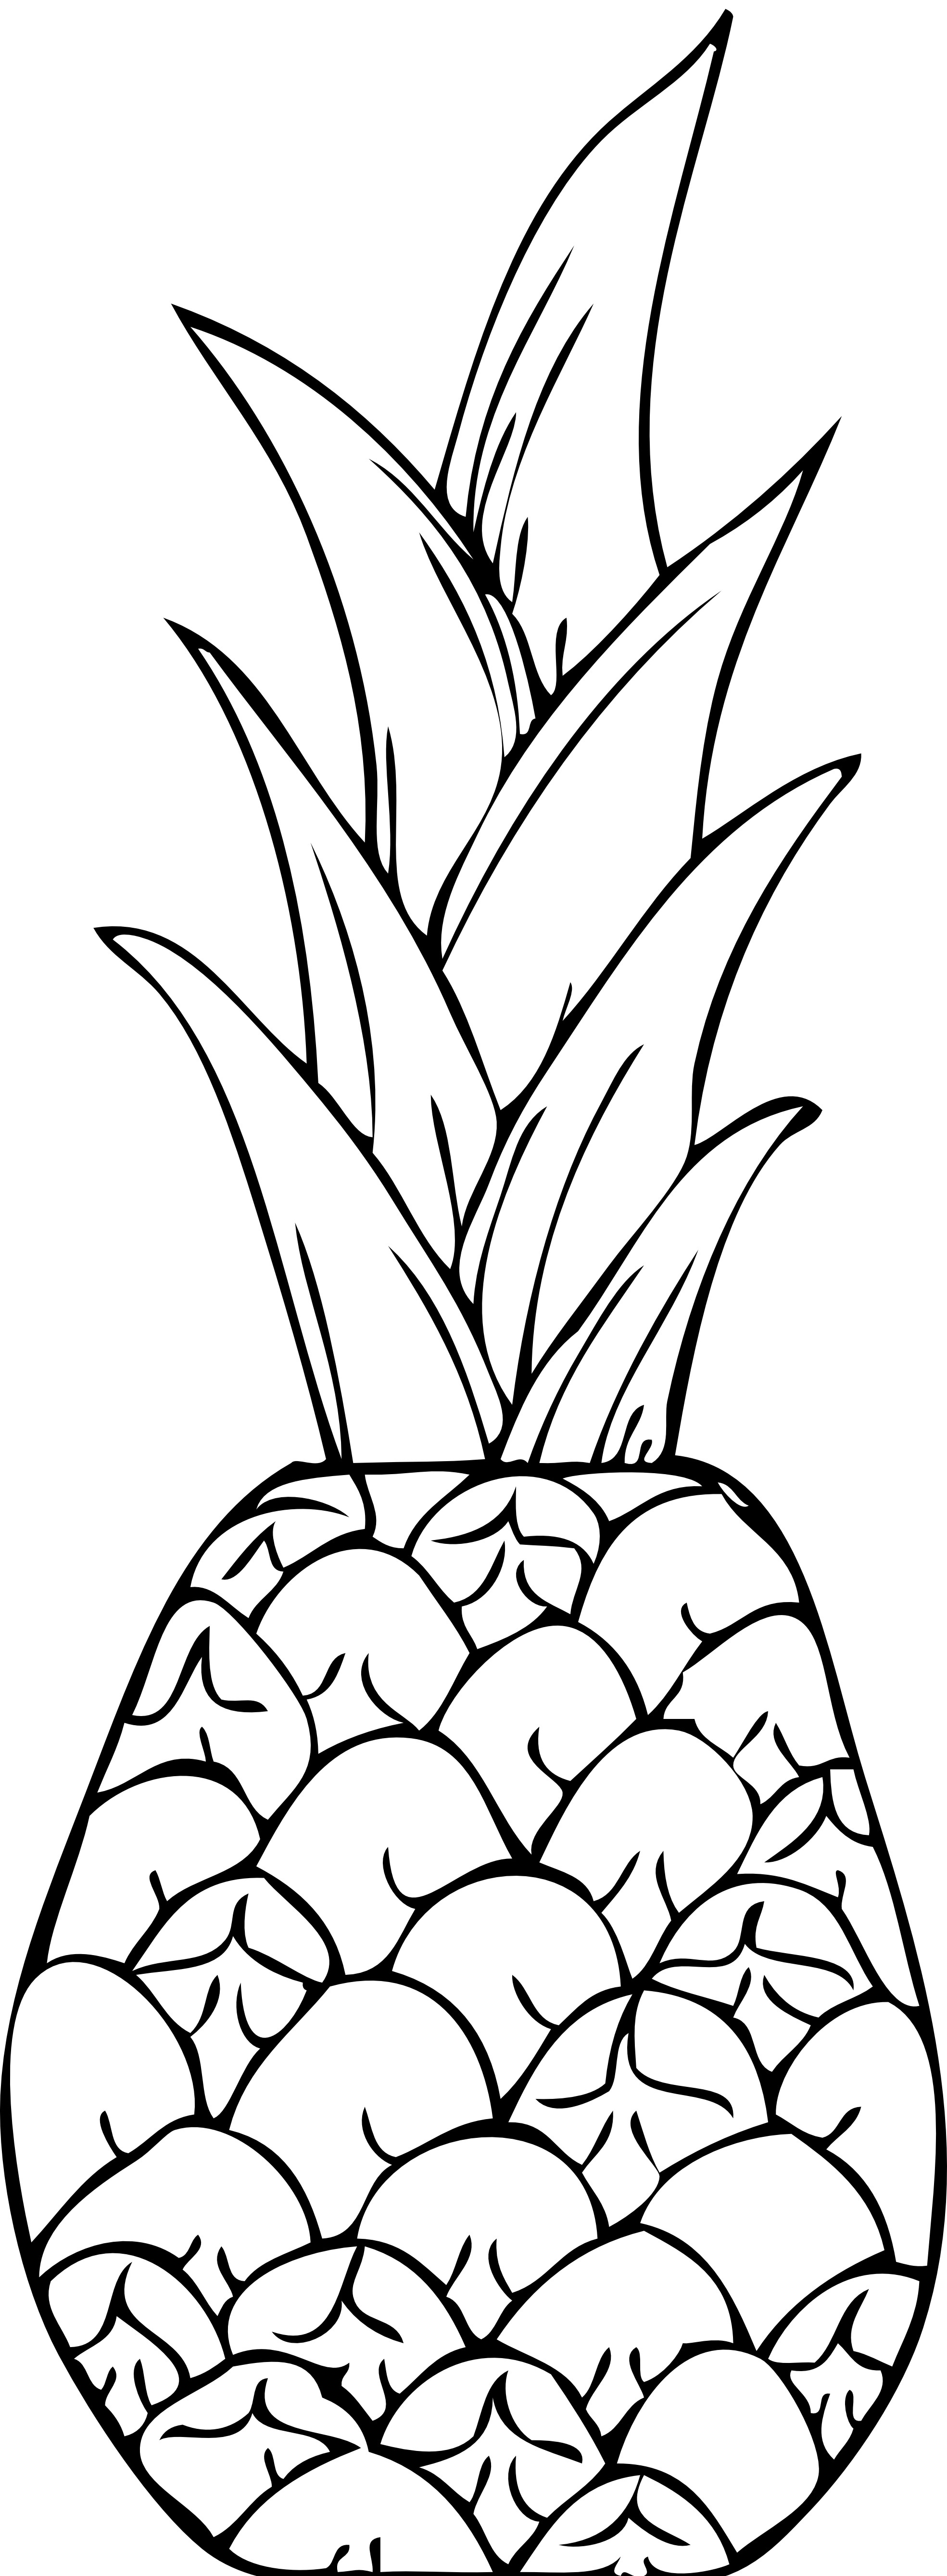 cute pineapple coloring page pineapple page tumblr coloring pages cute coloring pineapple page